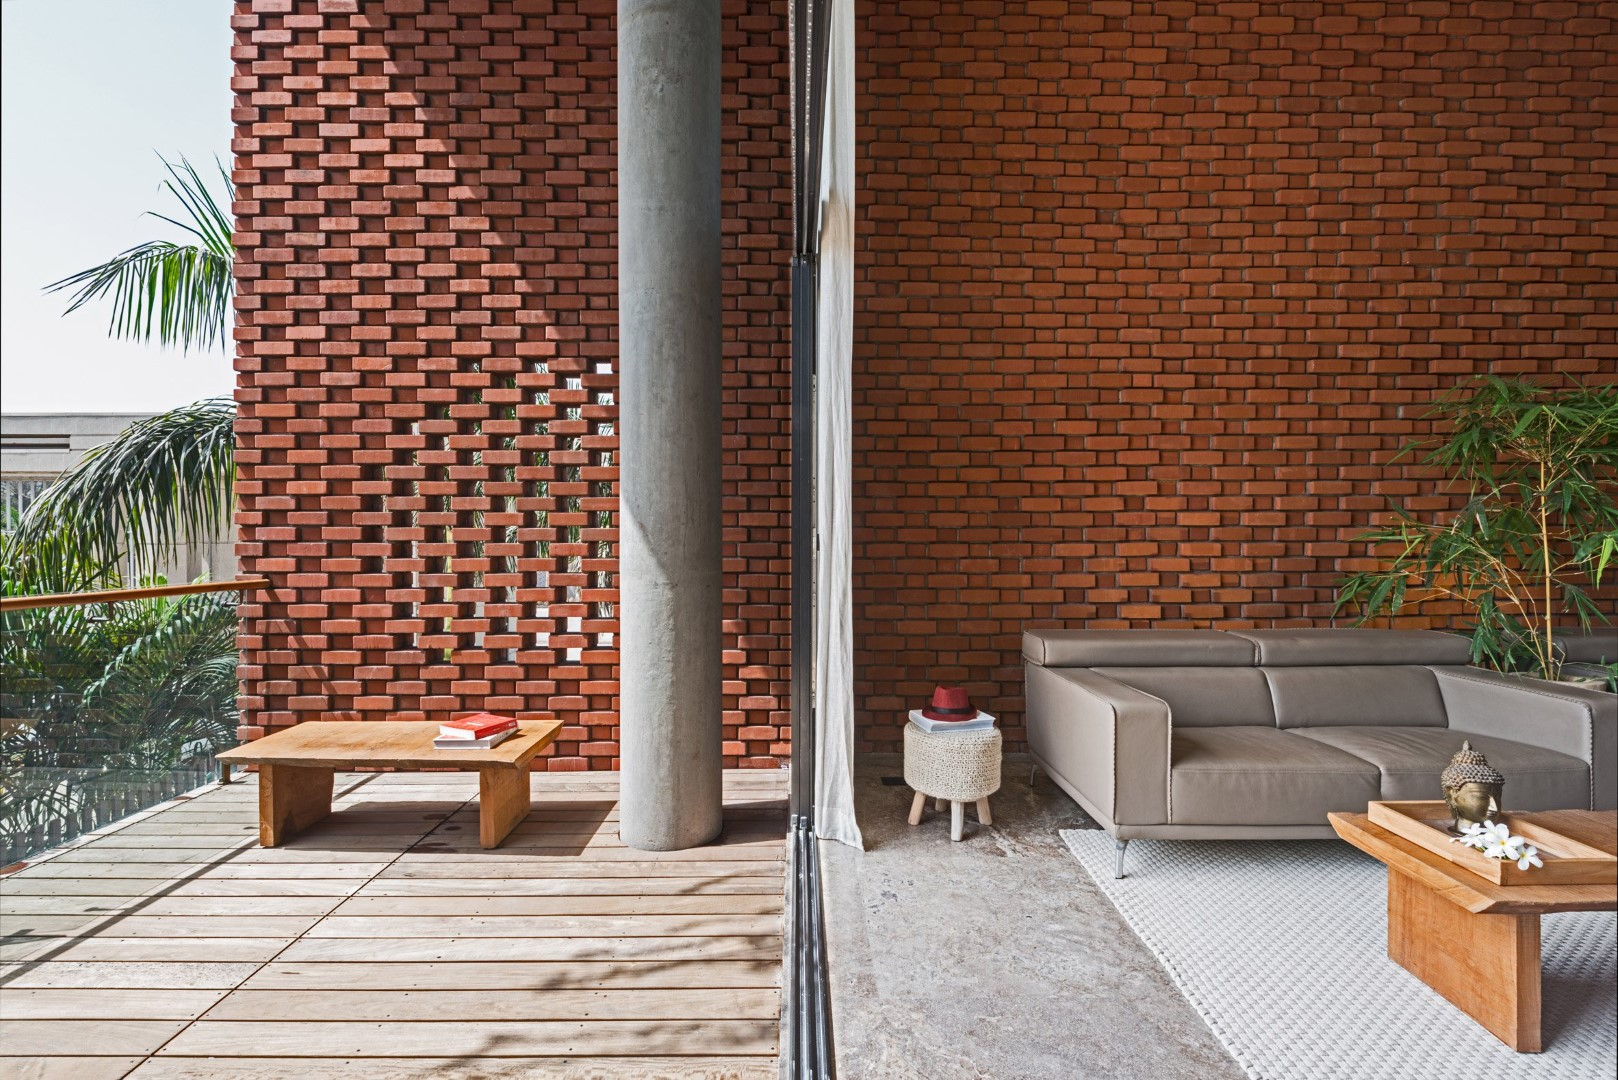 Brick facade house design work group the architects diary for Brick house designs